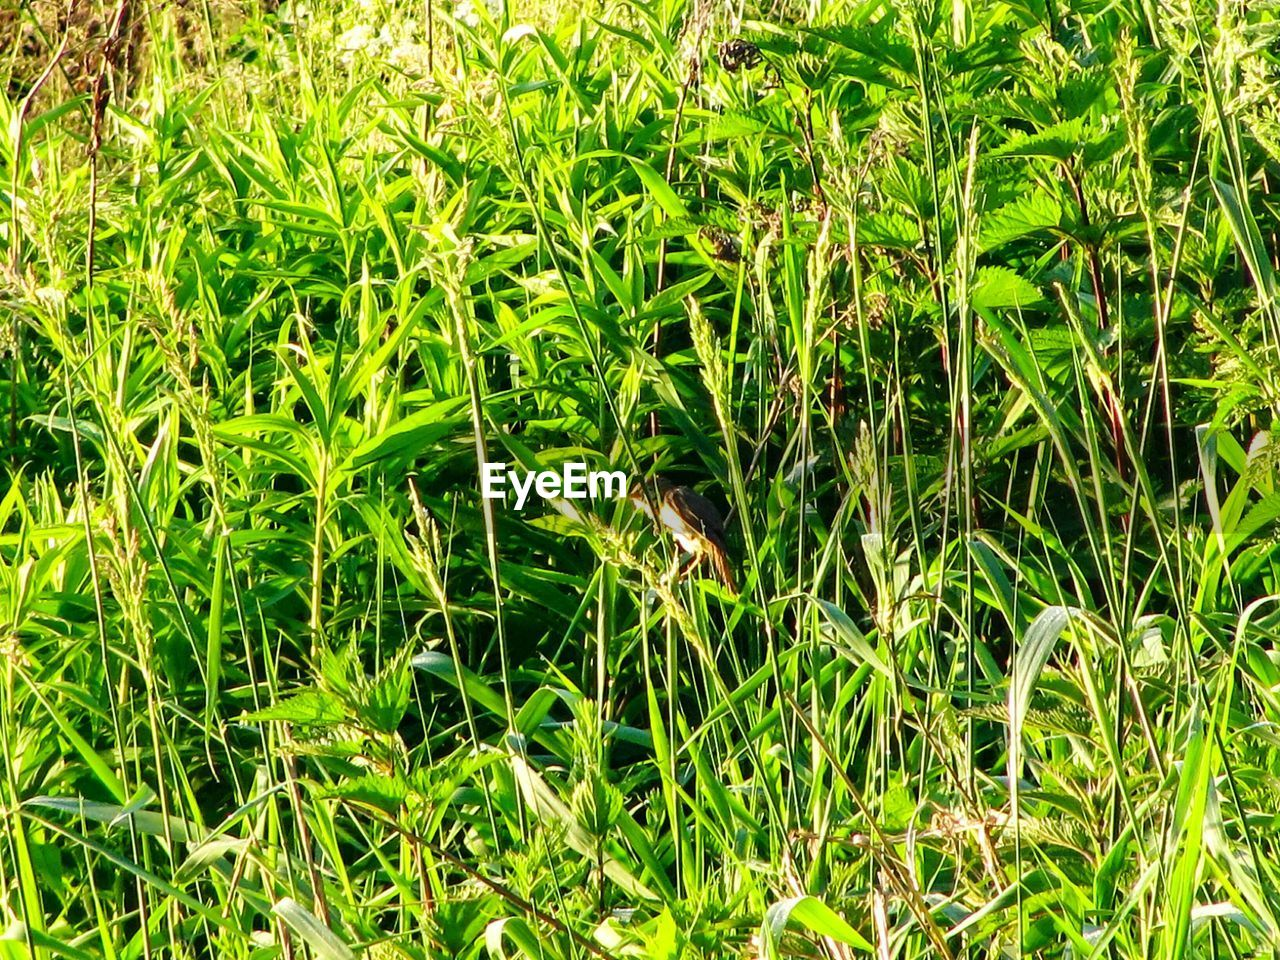 green color, plant, growth, grass, land, nature, field, beauty in nature, full frame, backgrounds, day, tranquility, no people, plant part, outdoors, high angle view, leaf, sunlight, close-up, lush foliage, blade of grass